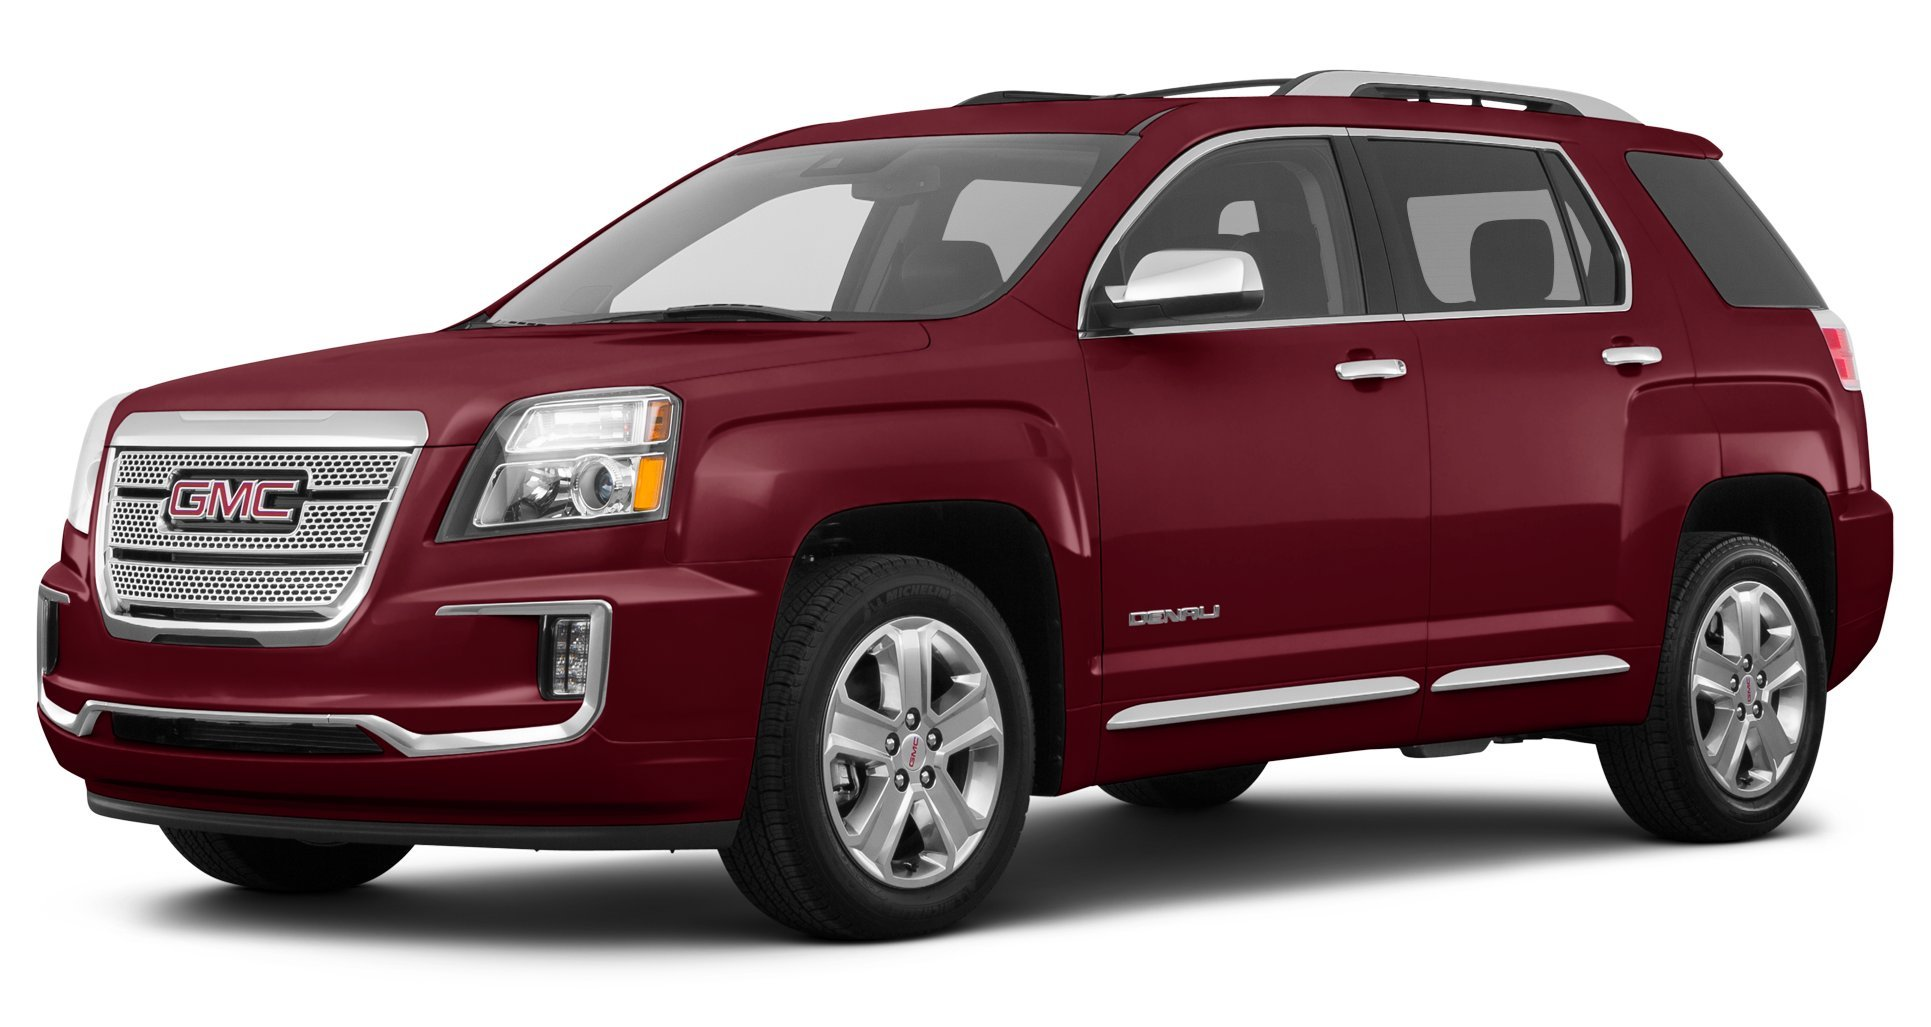 2016 gmc terrain reviews images and specs vehicles. Black Bedroom Furniture Sets. Home Design Ideas